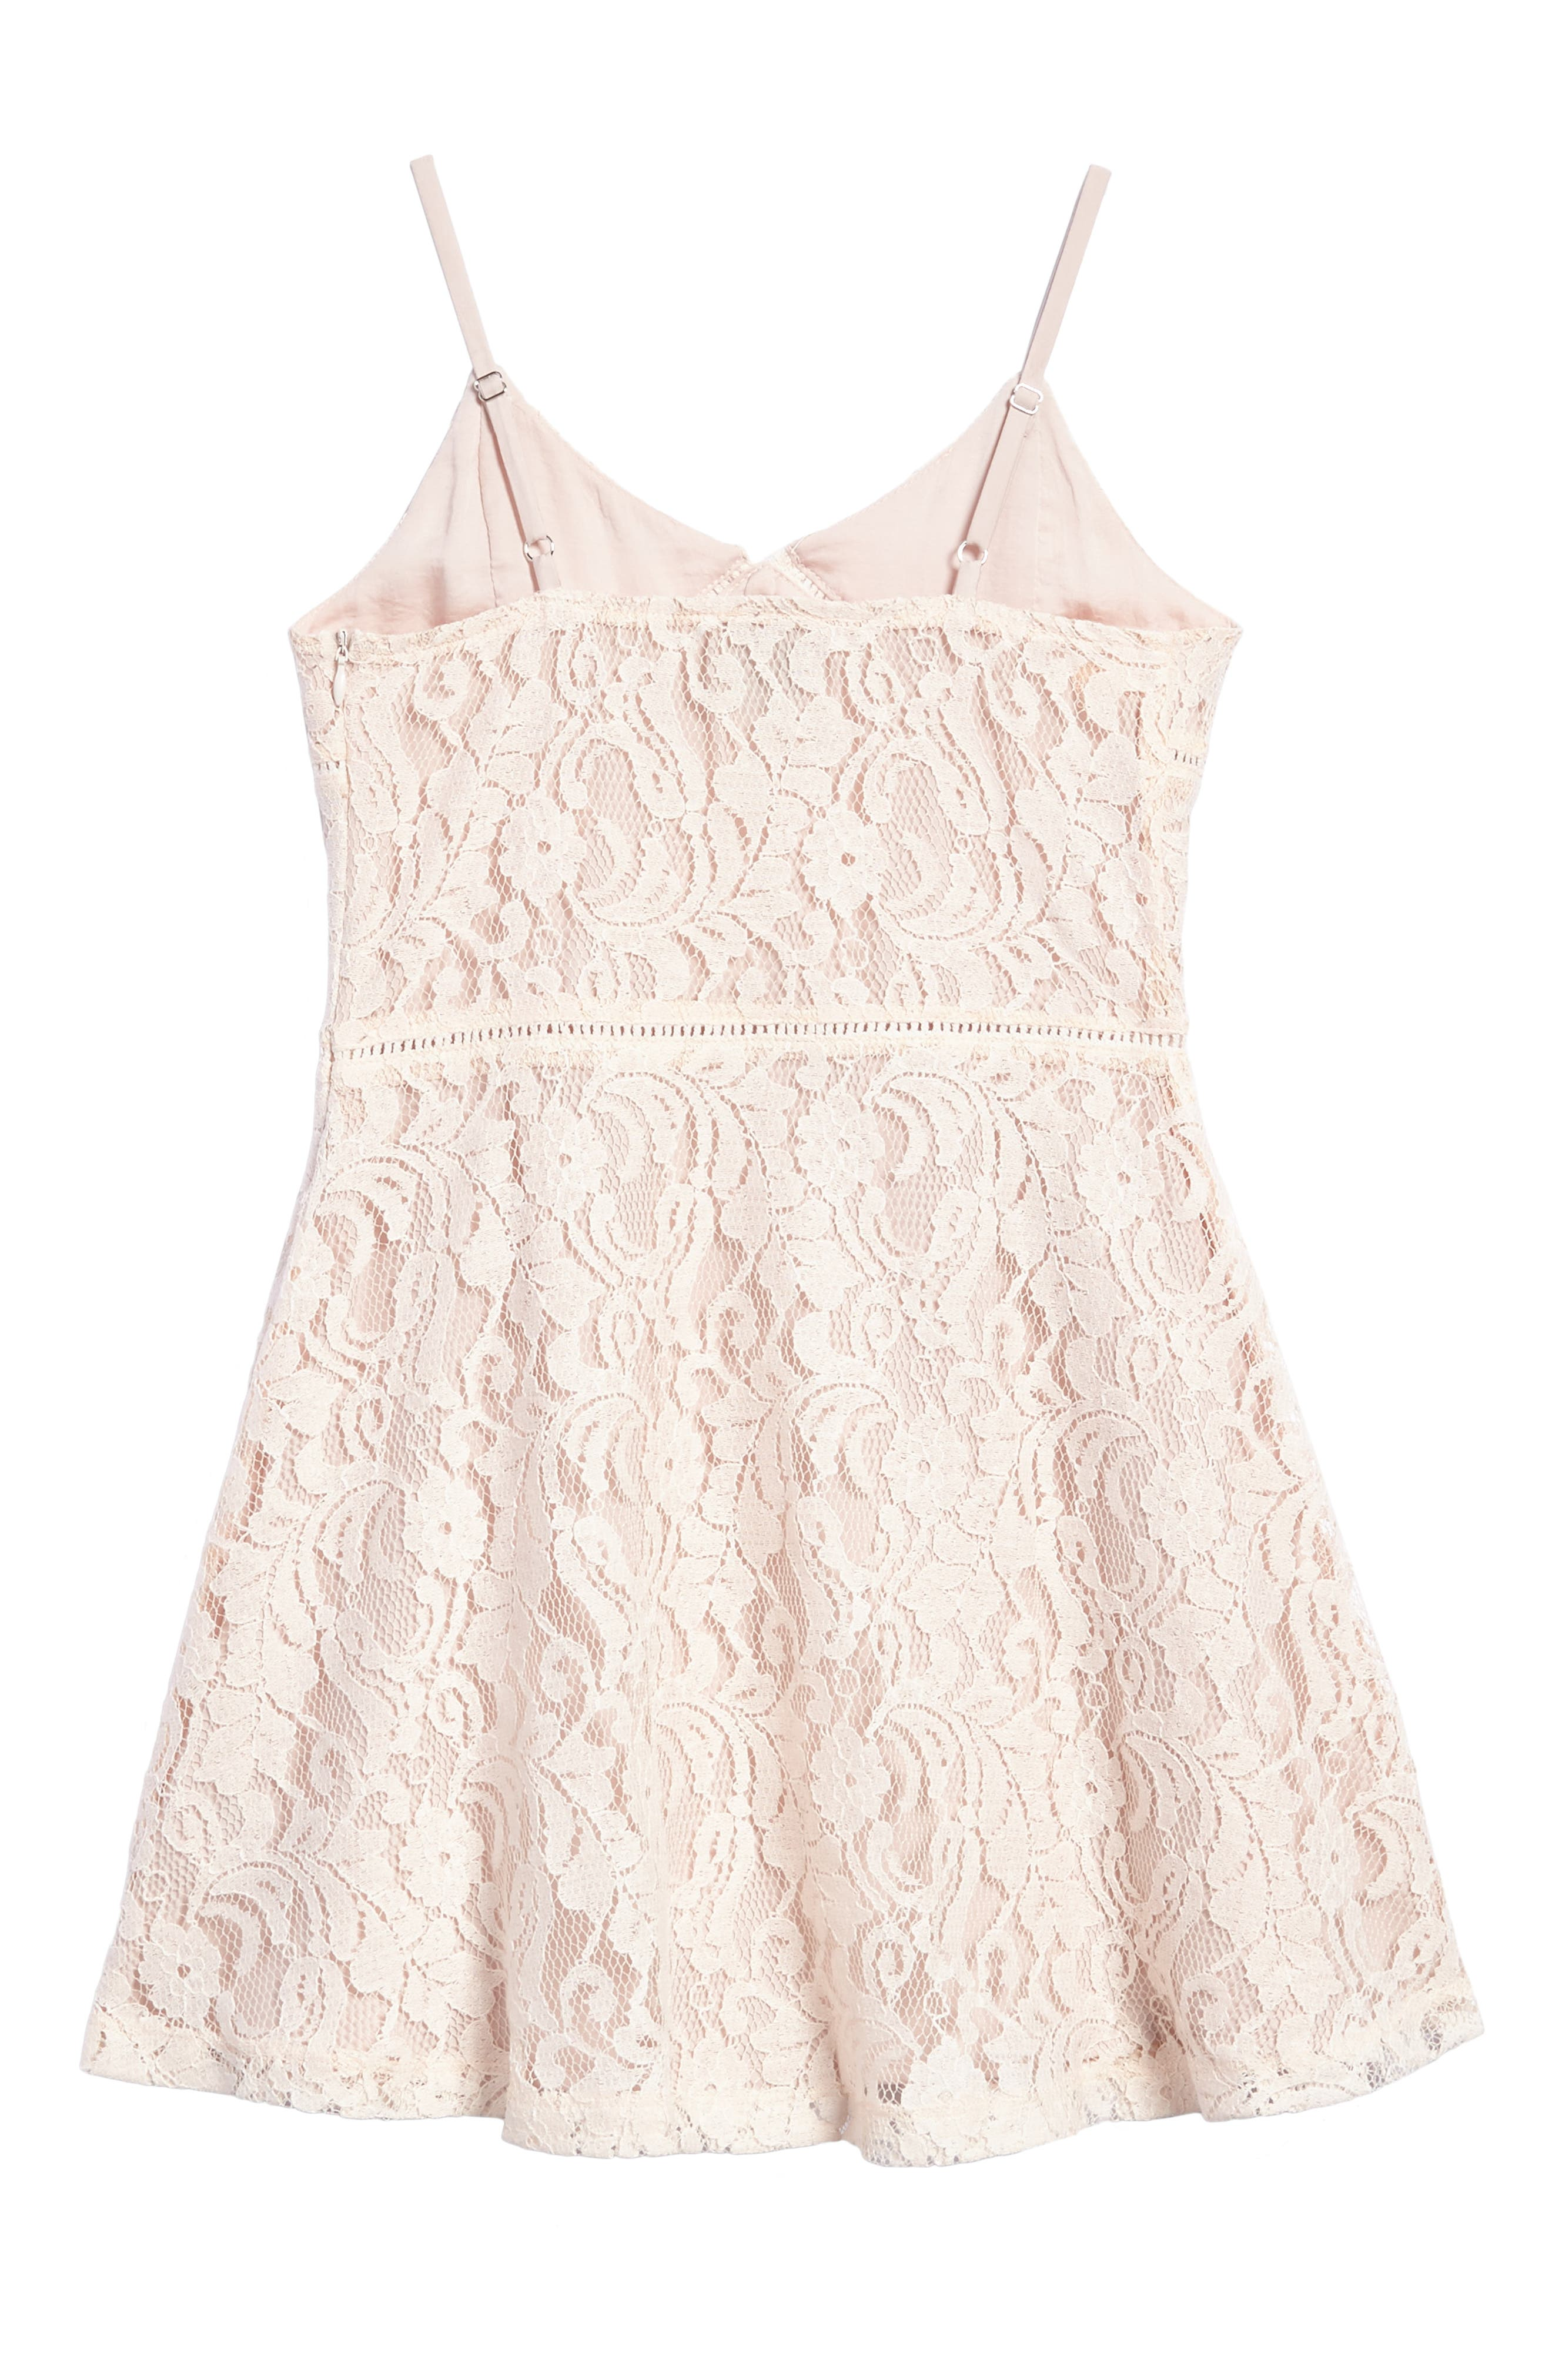 Lace Overlay Sundress,                             Alternate thumbnail 2, color,                             950